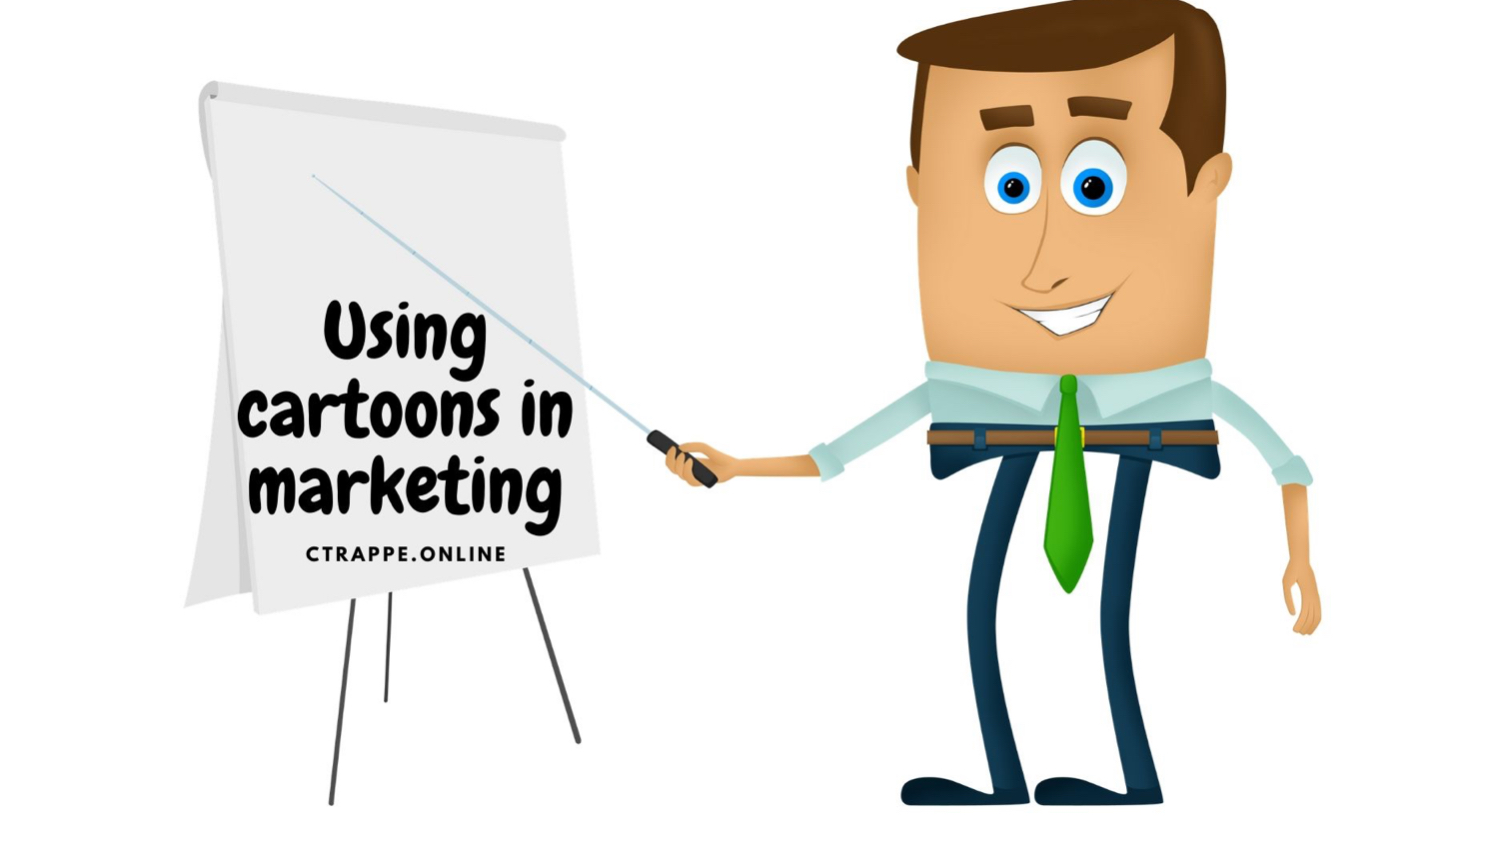 Using cartoons in marketing